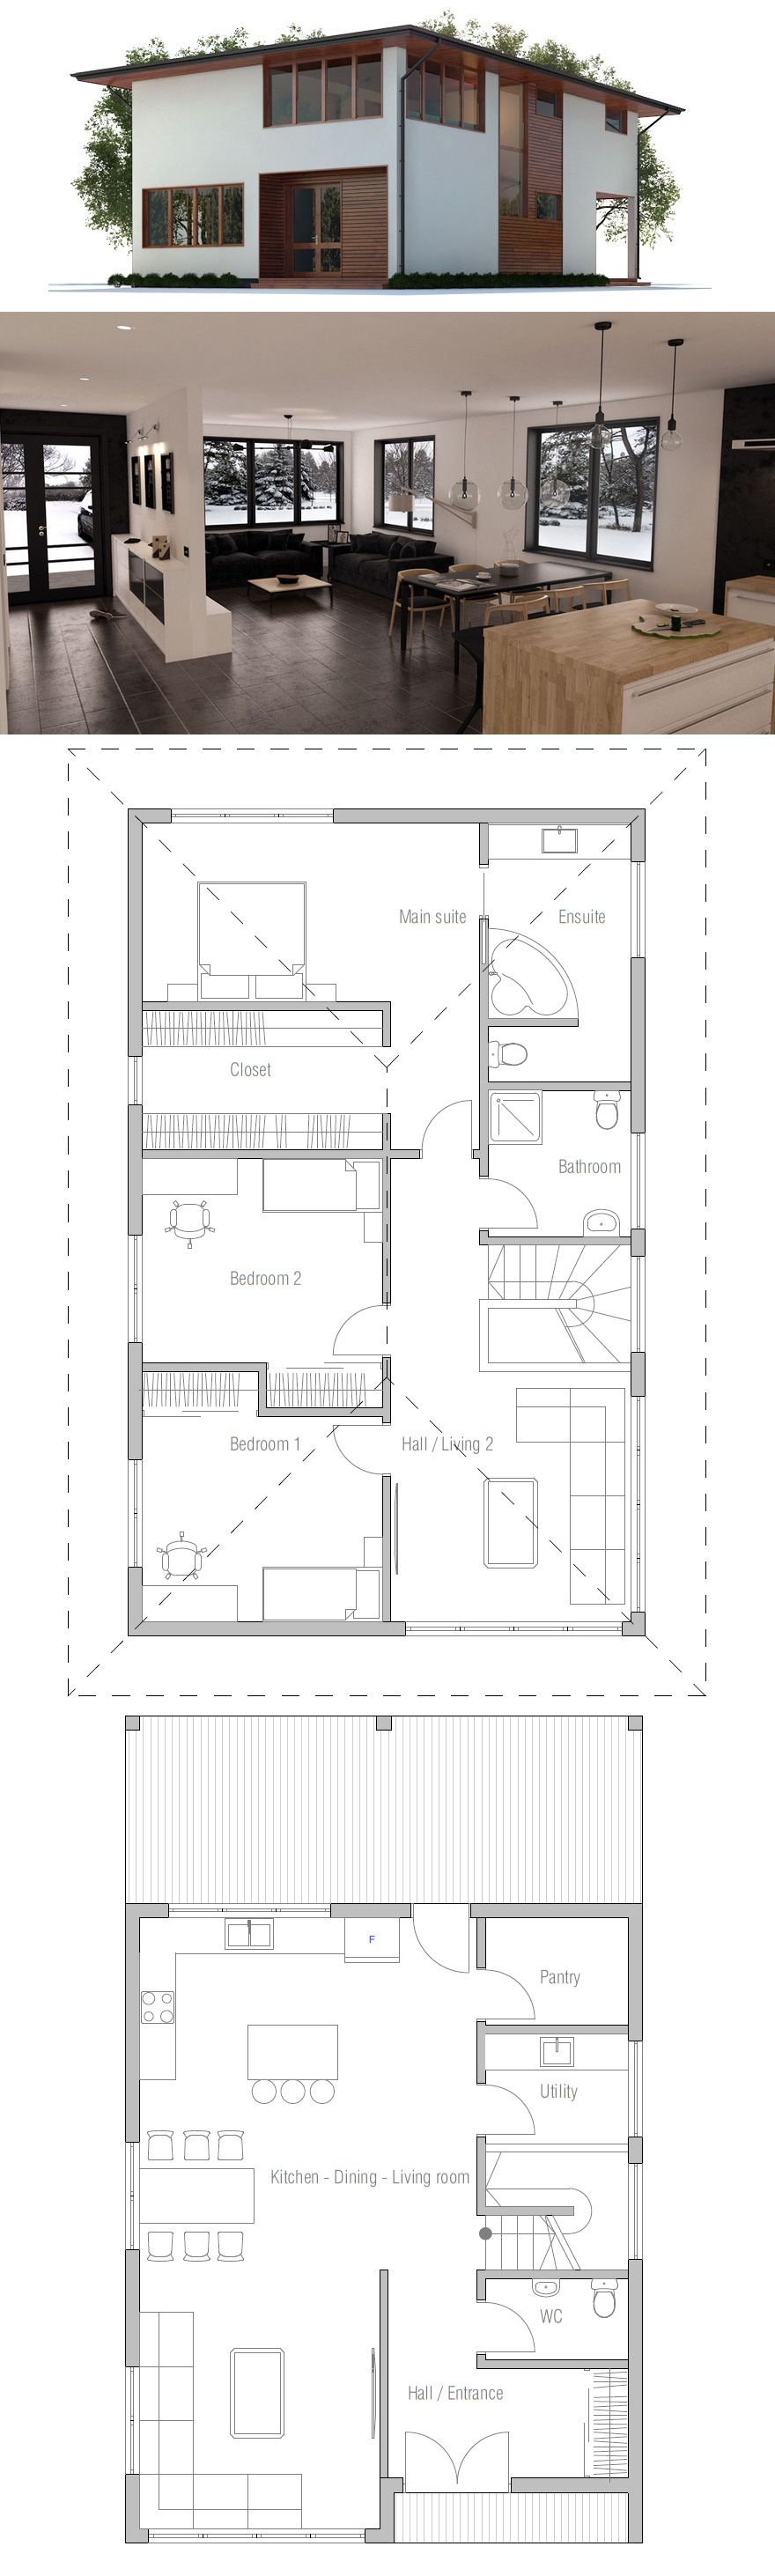 Narrow House Plan- 3 bedrooms/ 2.5 bathrooms/ living/ kitchen ...